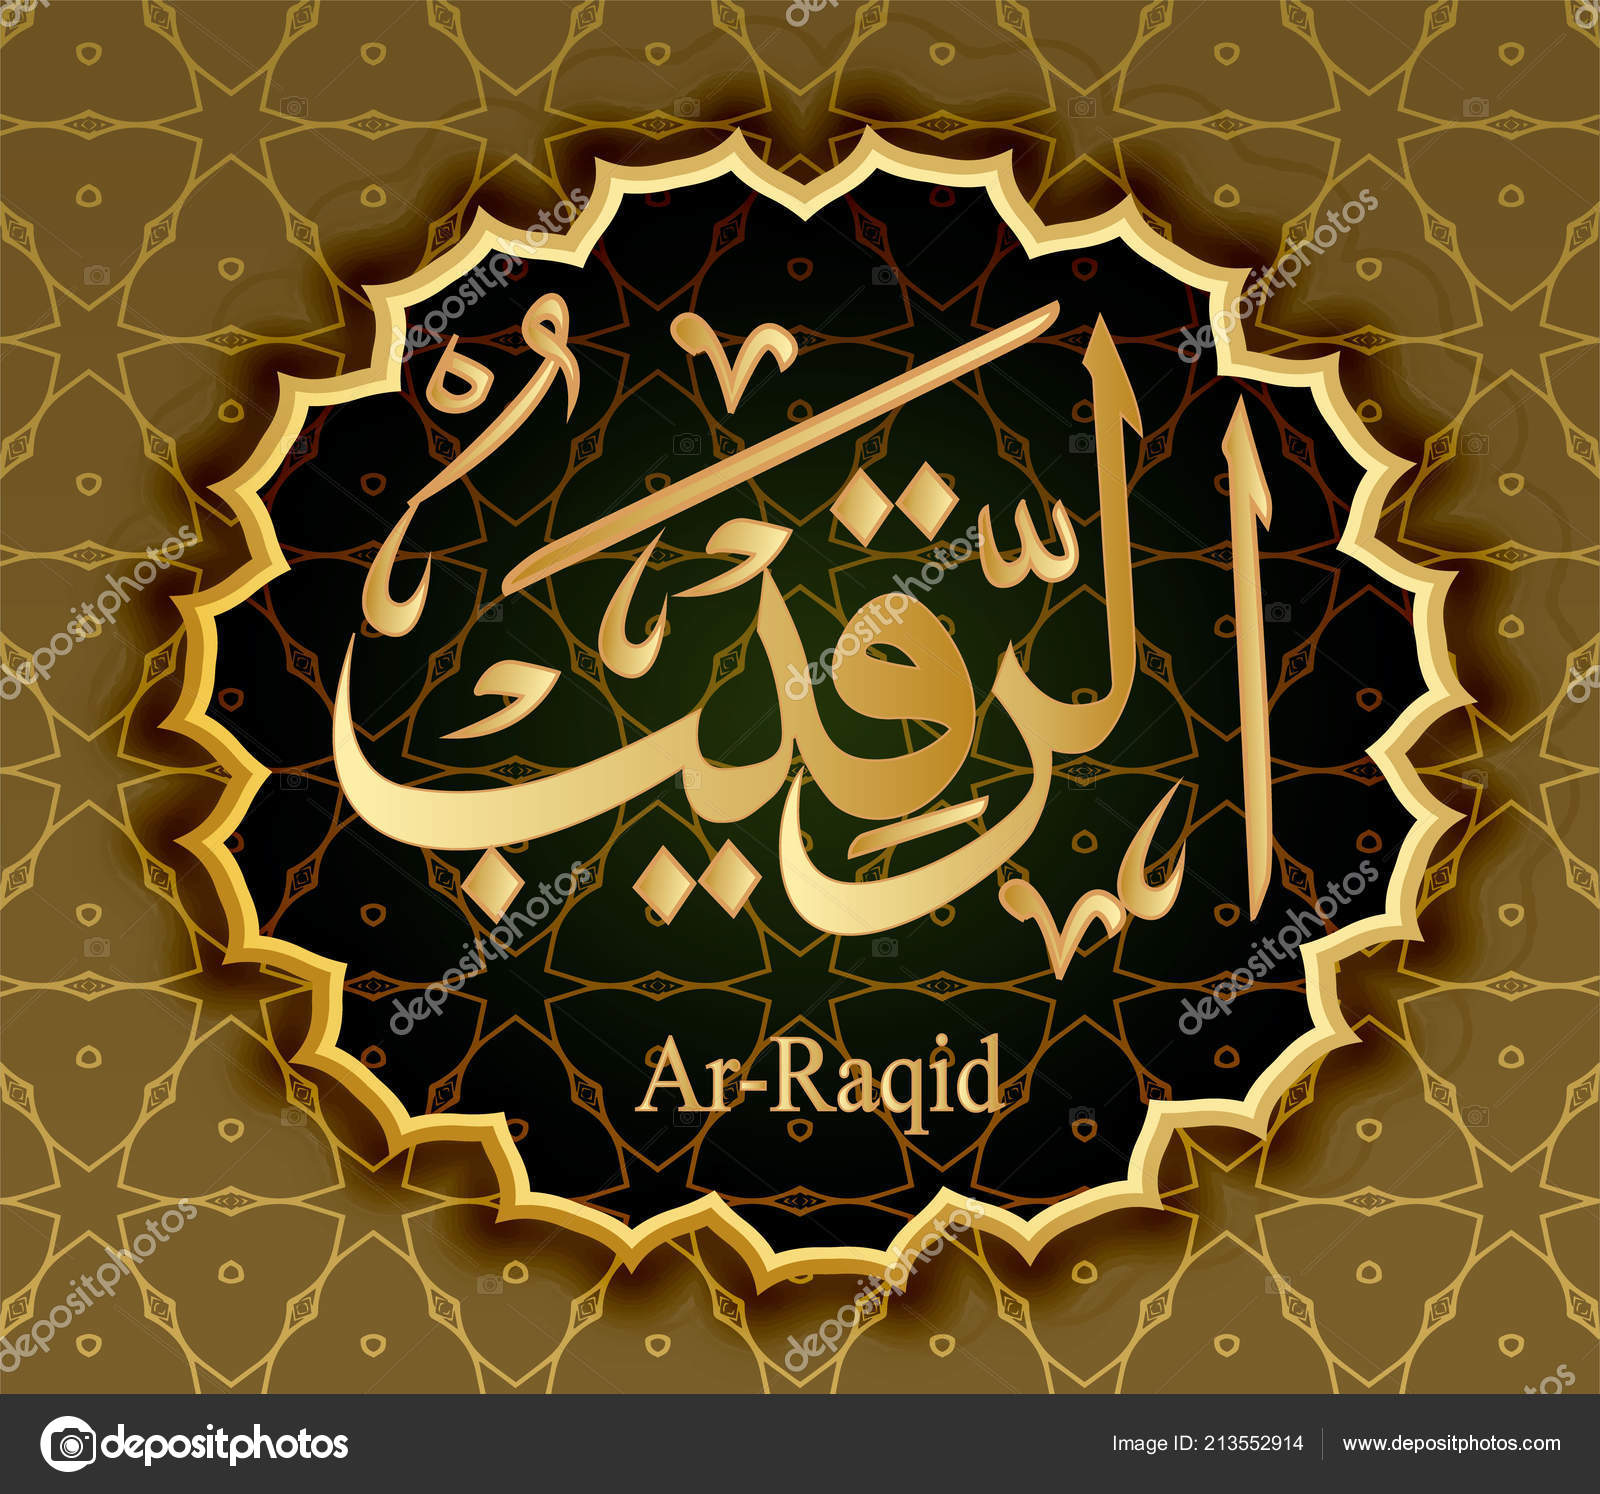 The name of Allah, Ar-Rakib means the Caretaker the Caretaker. — Stock